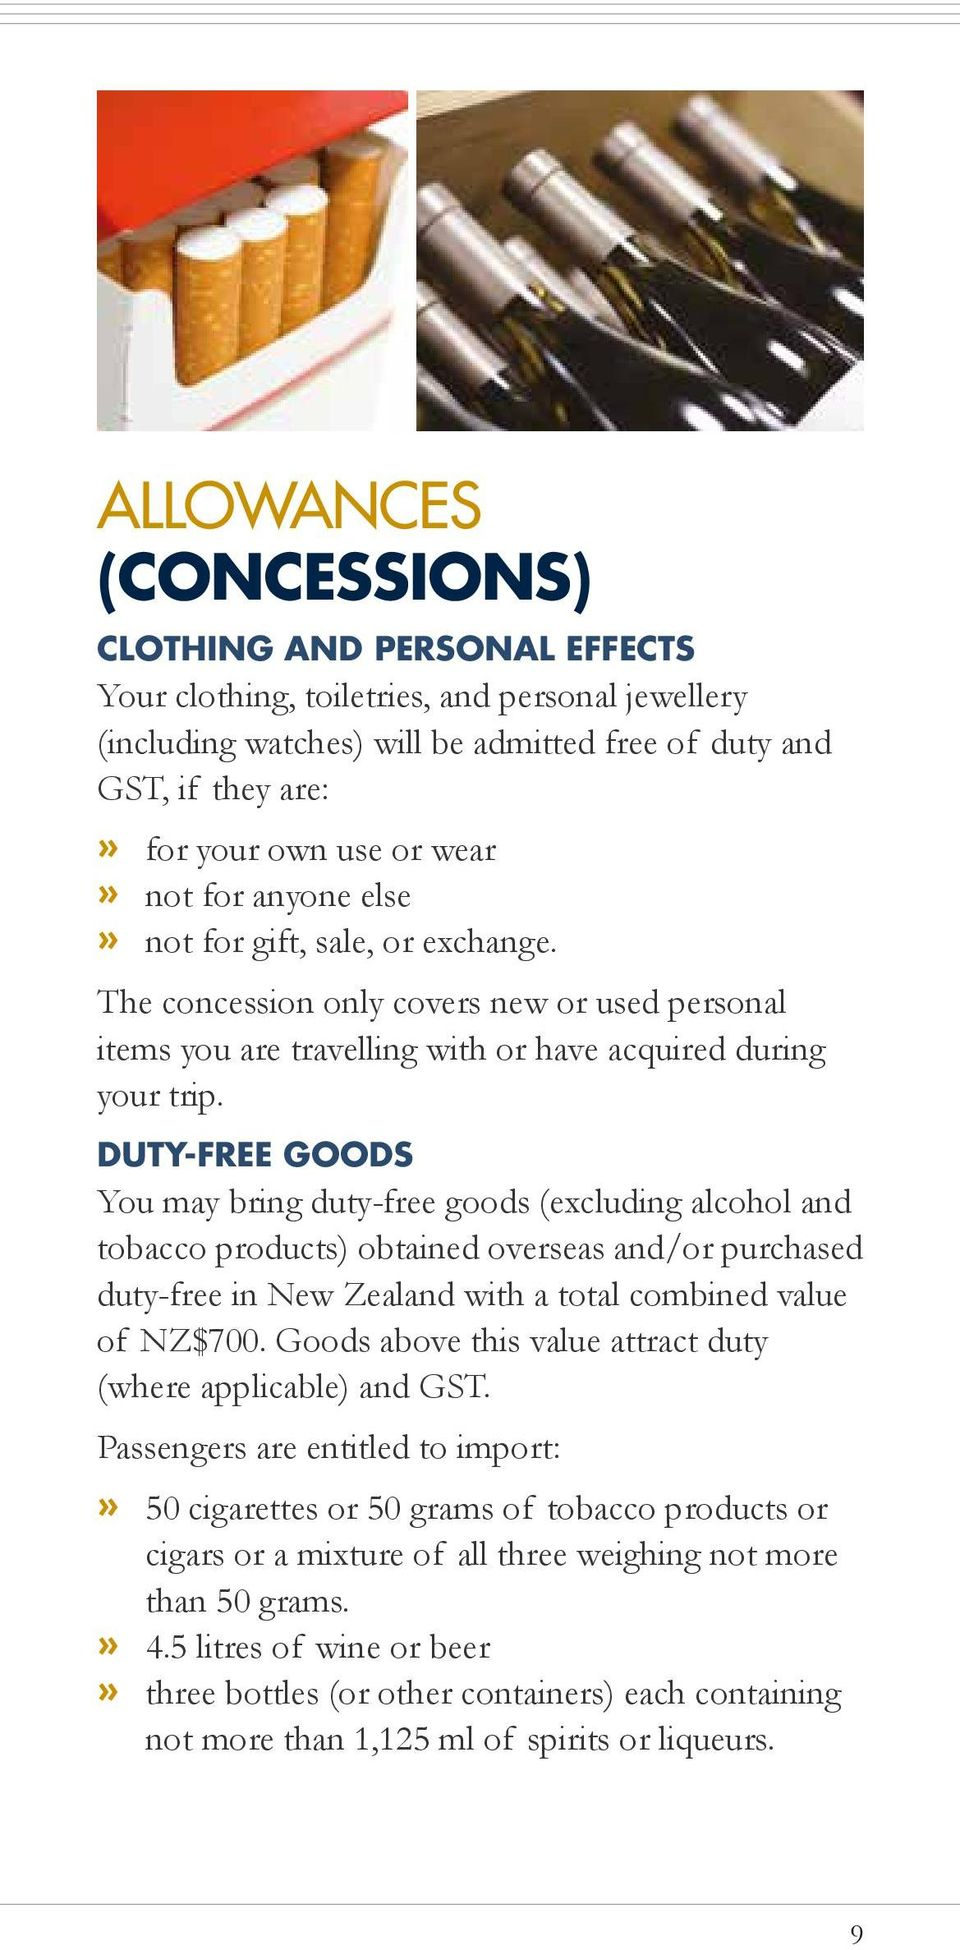 DUTY-FREE GOODS You may bring duty-free goods (excluding alcohol and tobacco products) obtained overseas and/or purchased duty-free in New Zealand with a total combined value of NZ$700.